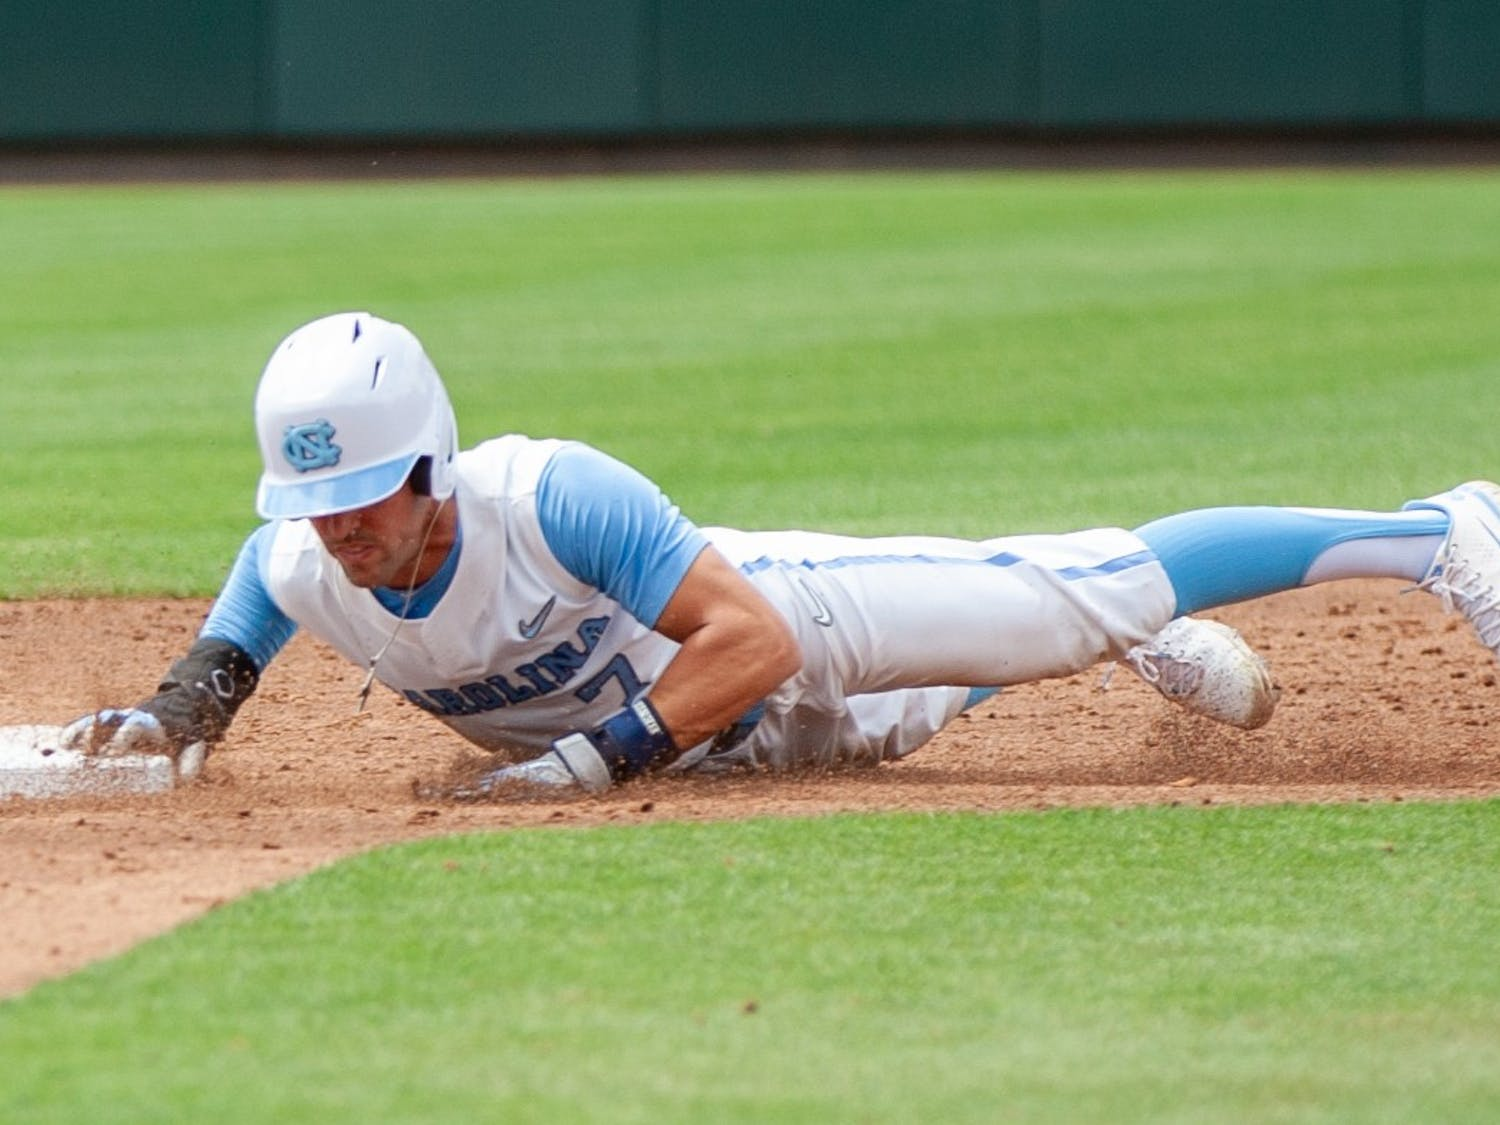 Senior outfielder Dallas Tessar (7) dives for second base at the game against Duke on Saturday Apr. 10 2021 at Boshamer Stadium. UNC lost 2-4.